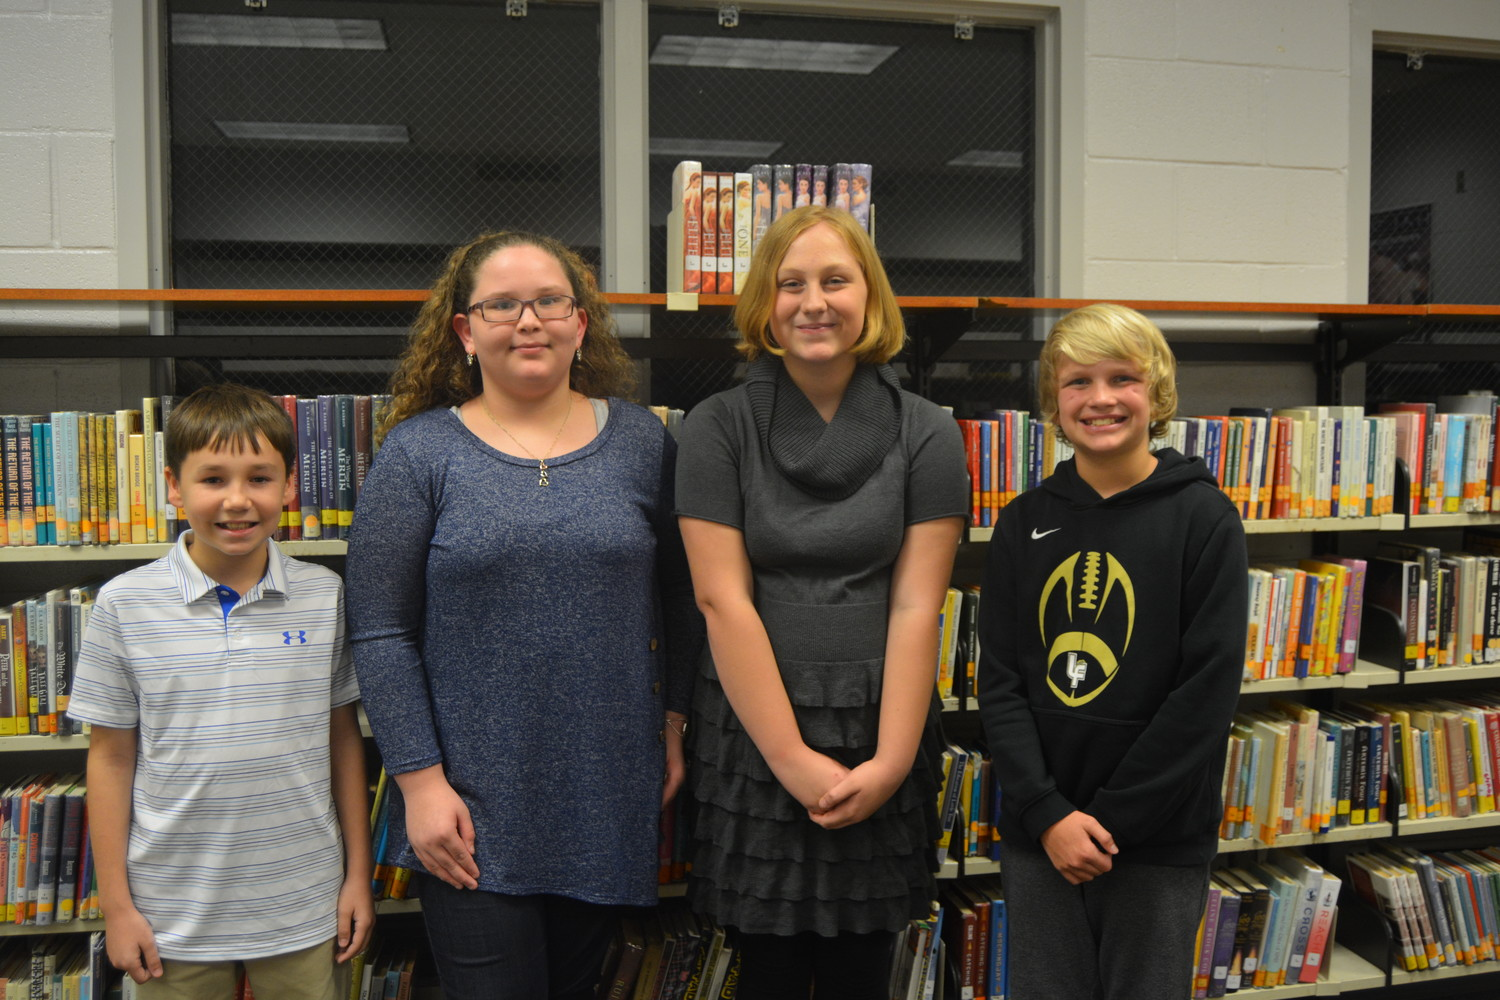 SIXTH-Grade LFMS Poetry Winners are, from left, Second Place performance - Christian Phillips, First Place performance - Emily Bingham, First Place original - Aiden Amos, Second Place original - Hank Adams.